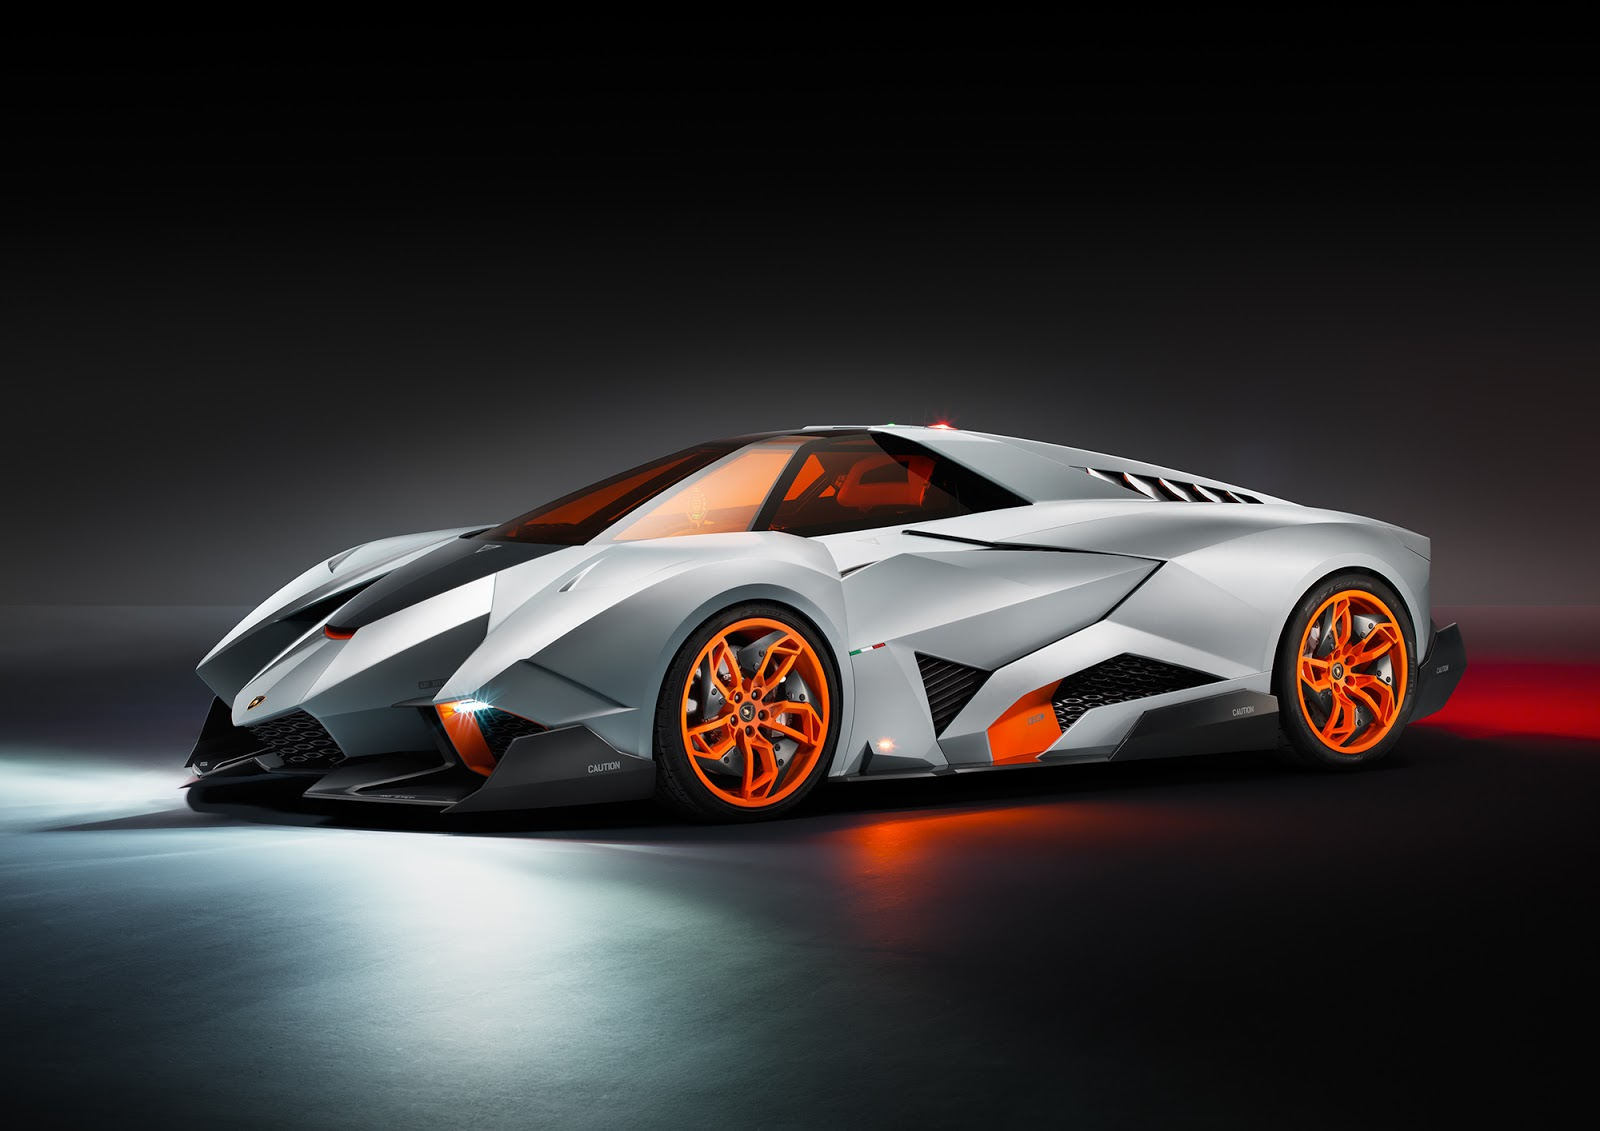 Lamborghini Egoista HD Wallpapers 1080p with orange tint glasses 1600x1131